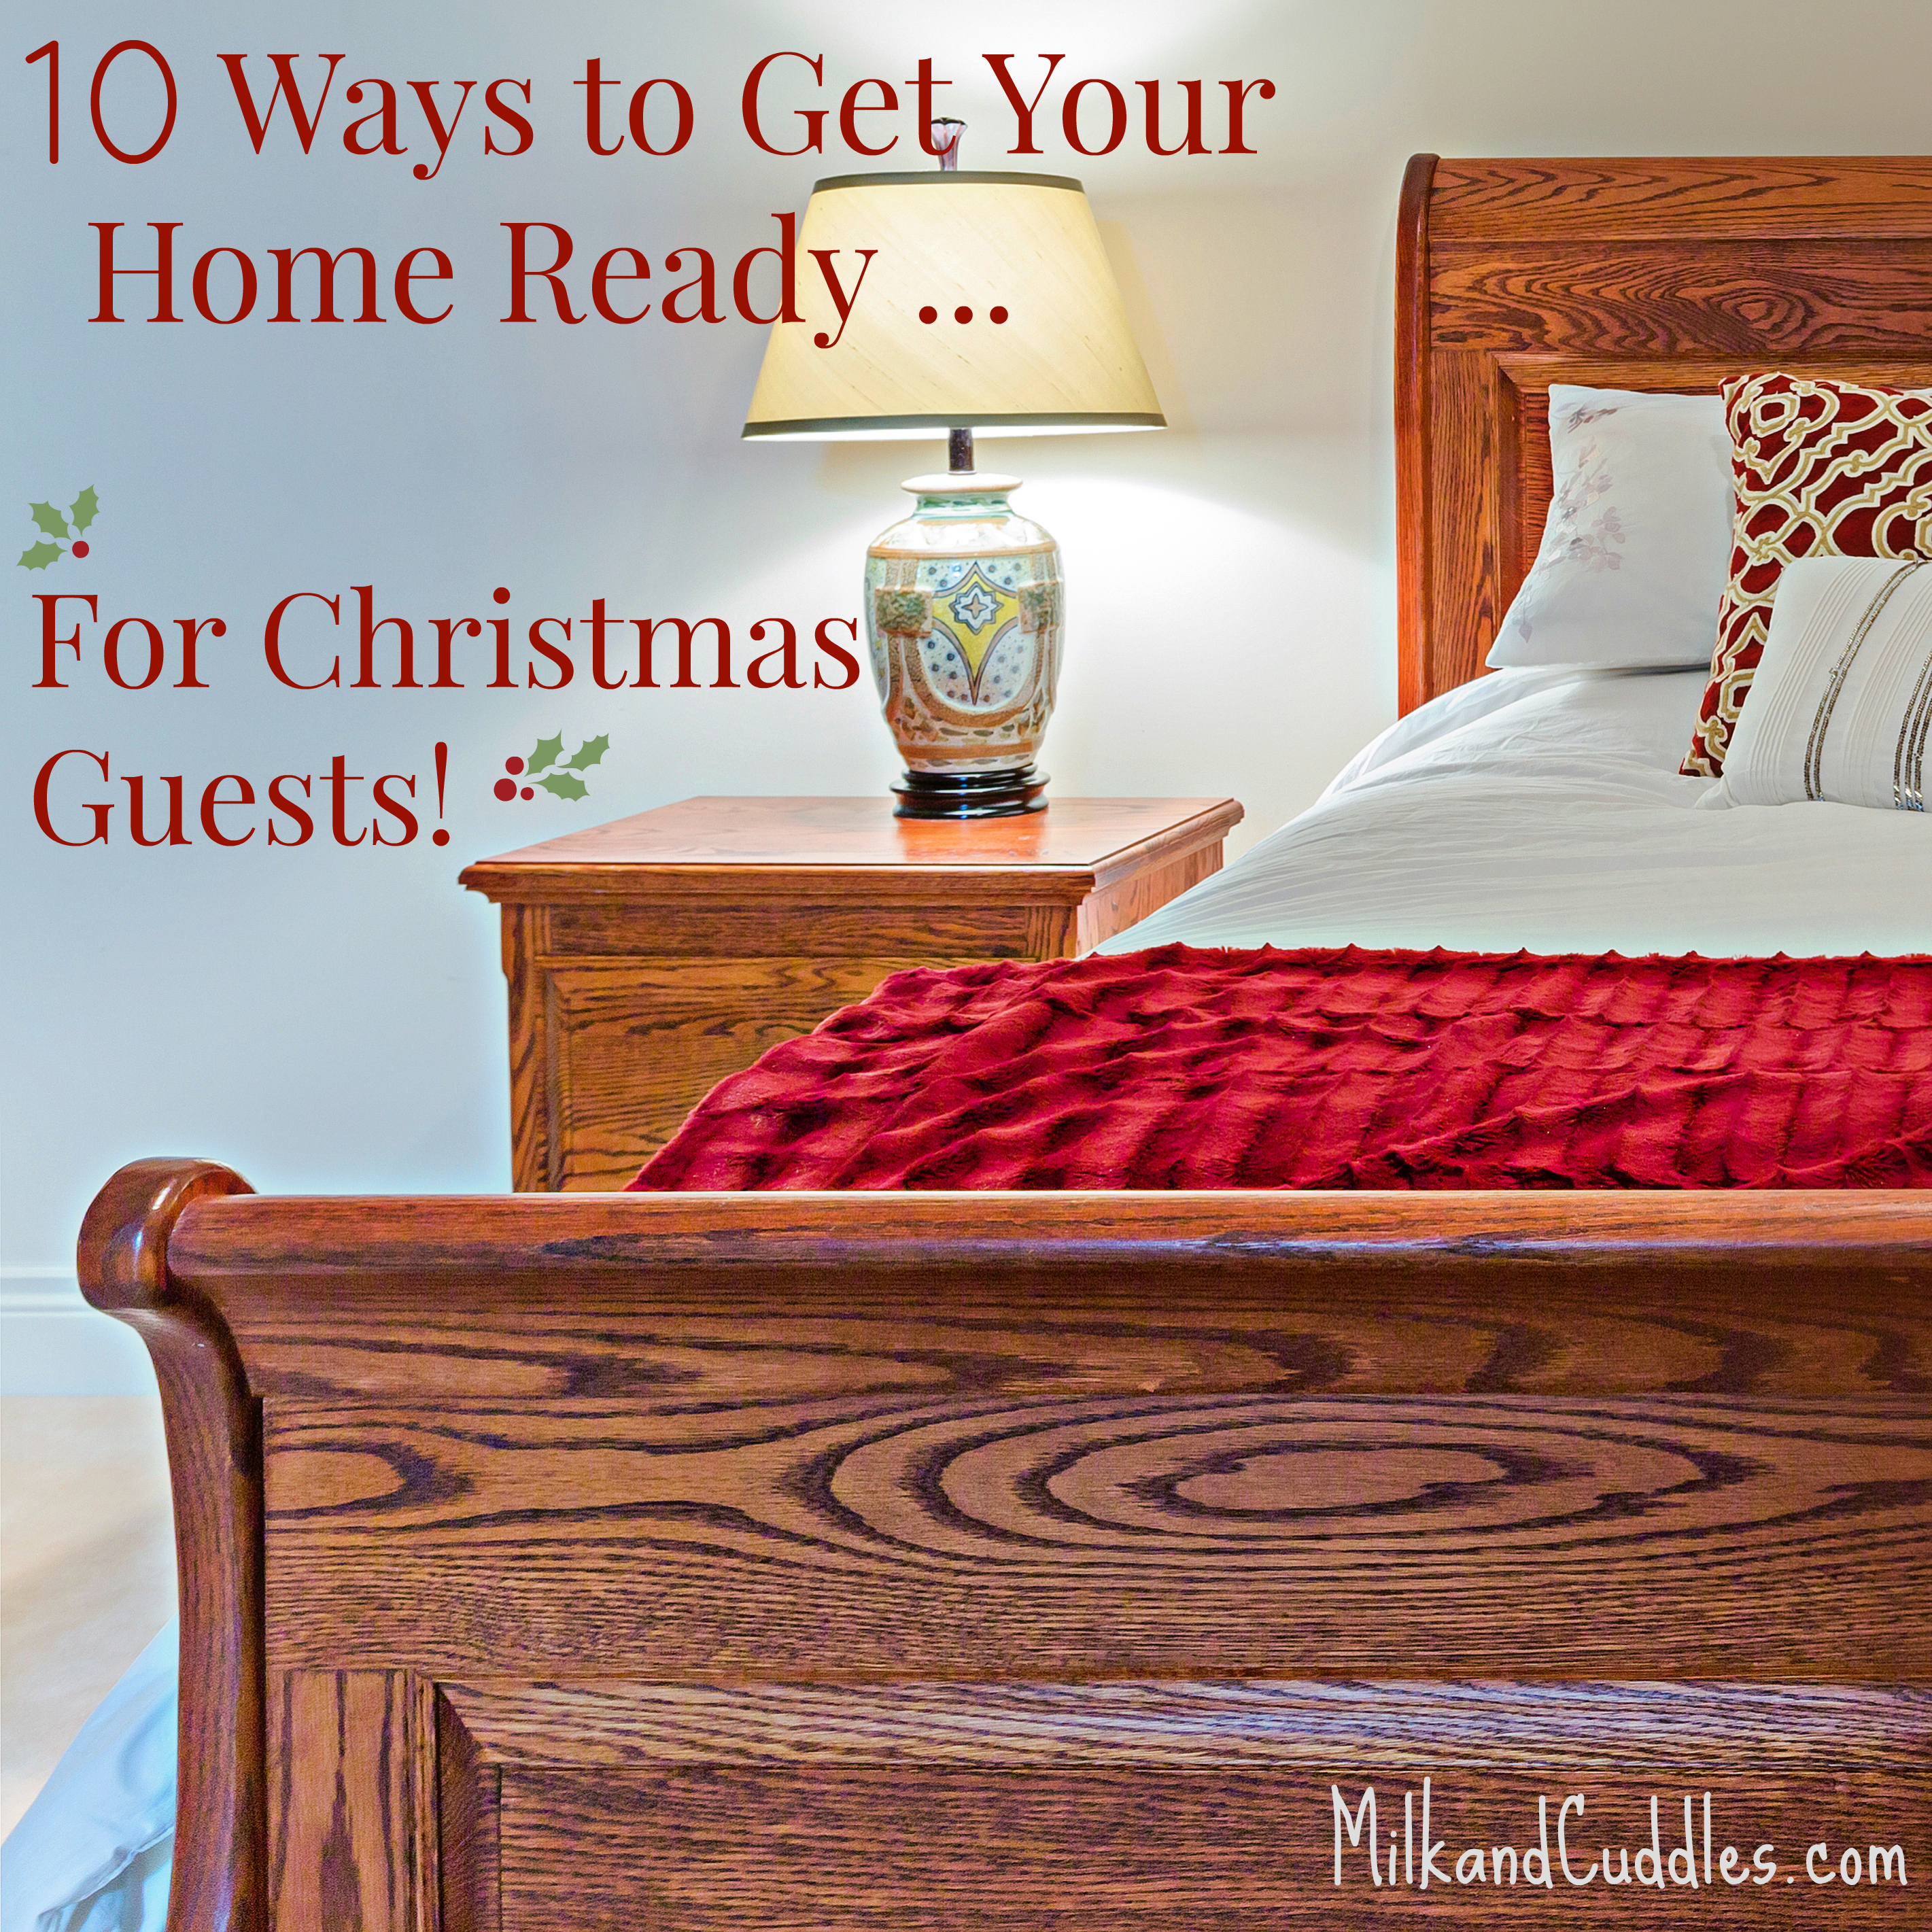 Milk Cuddles Blog Archive 10 Ways To Get Your Home